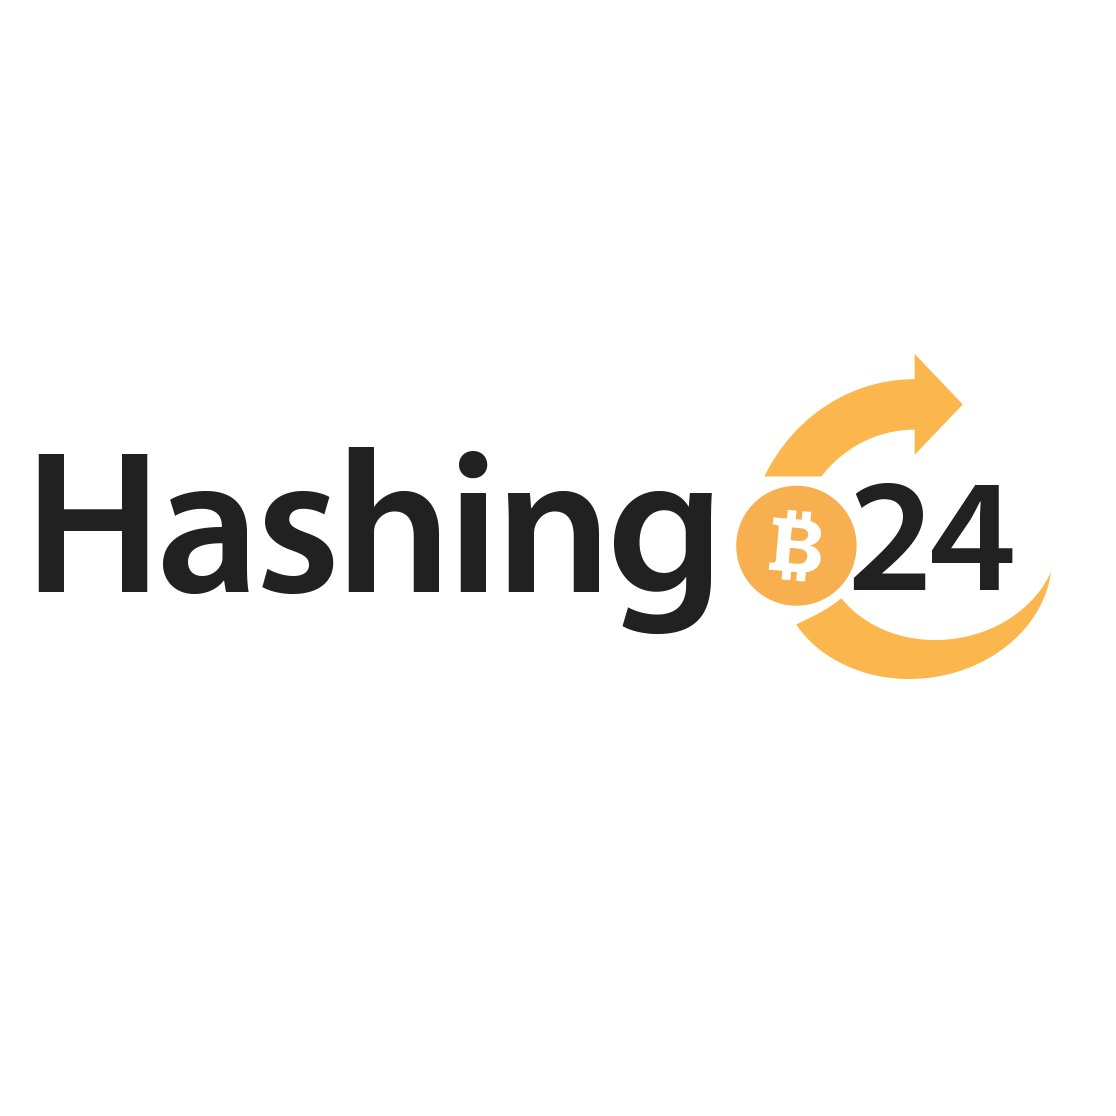 Hashing24 Cloud mining service Review and Profitability Calculation Estimate Image